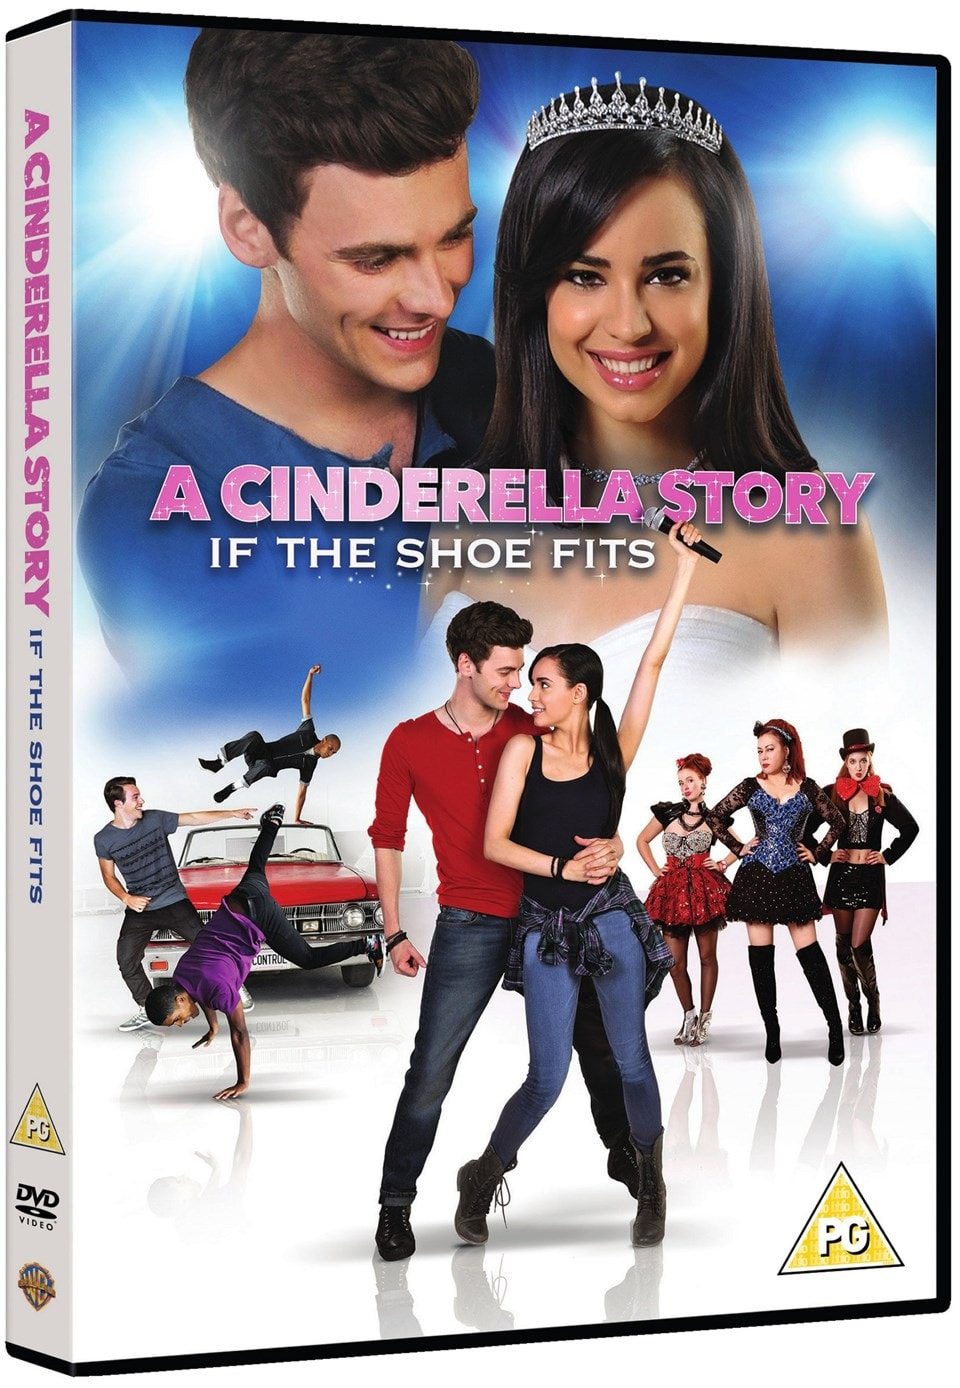 A Cinderella Story - If the Shoe Fits - 2